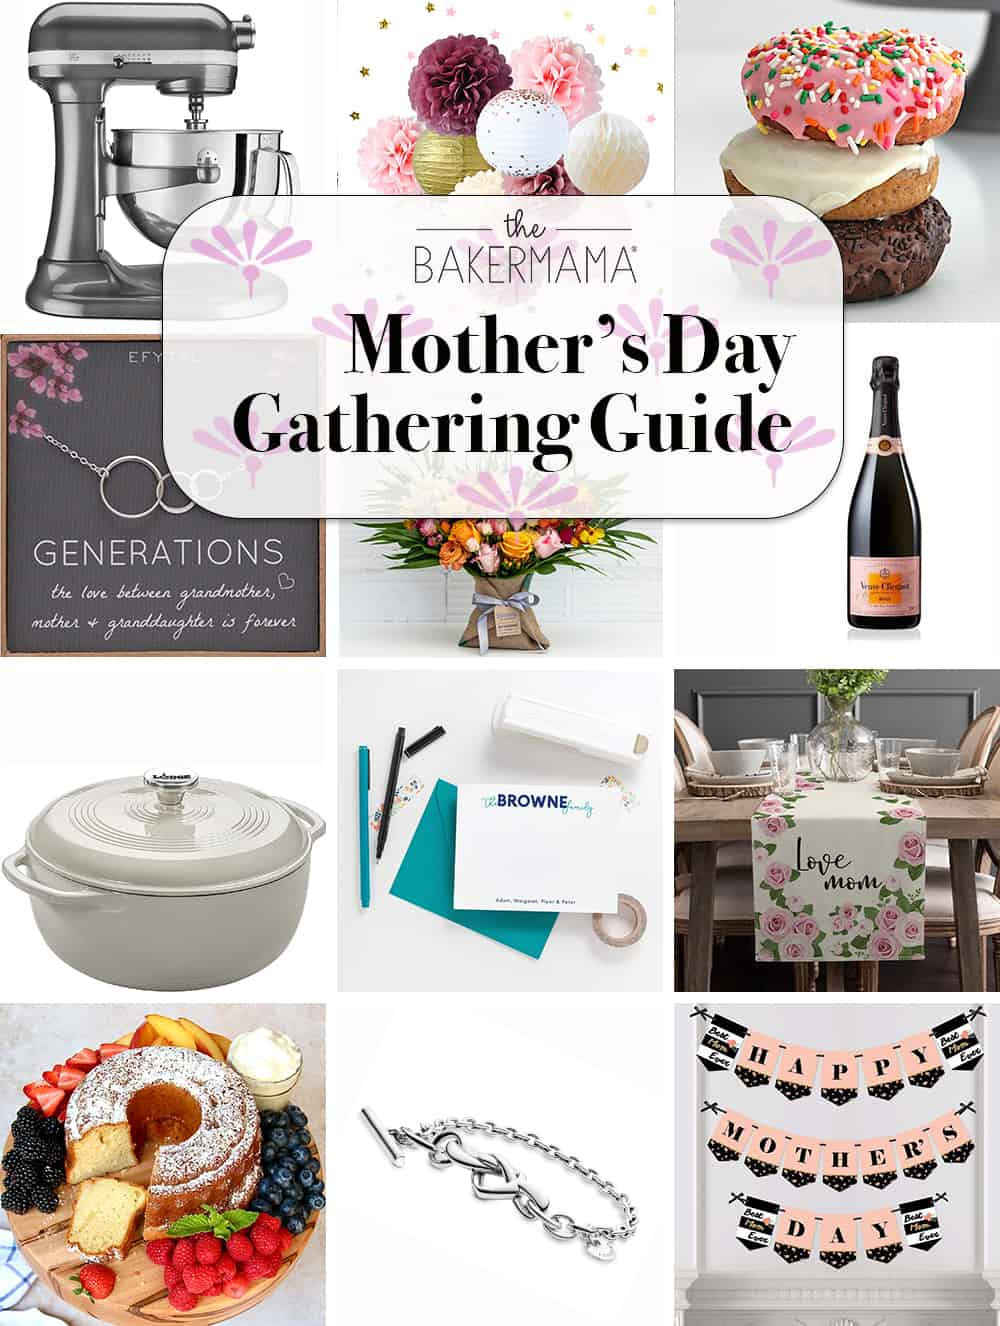 Mother's Day Gather Guide by The BakerMama